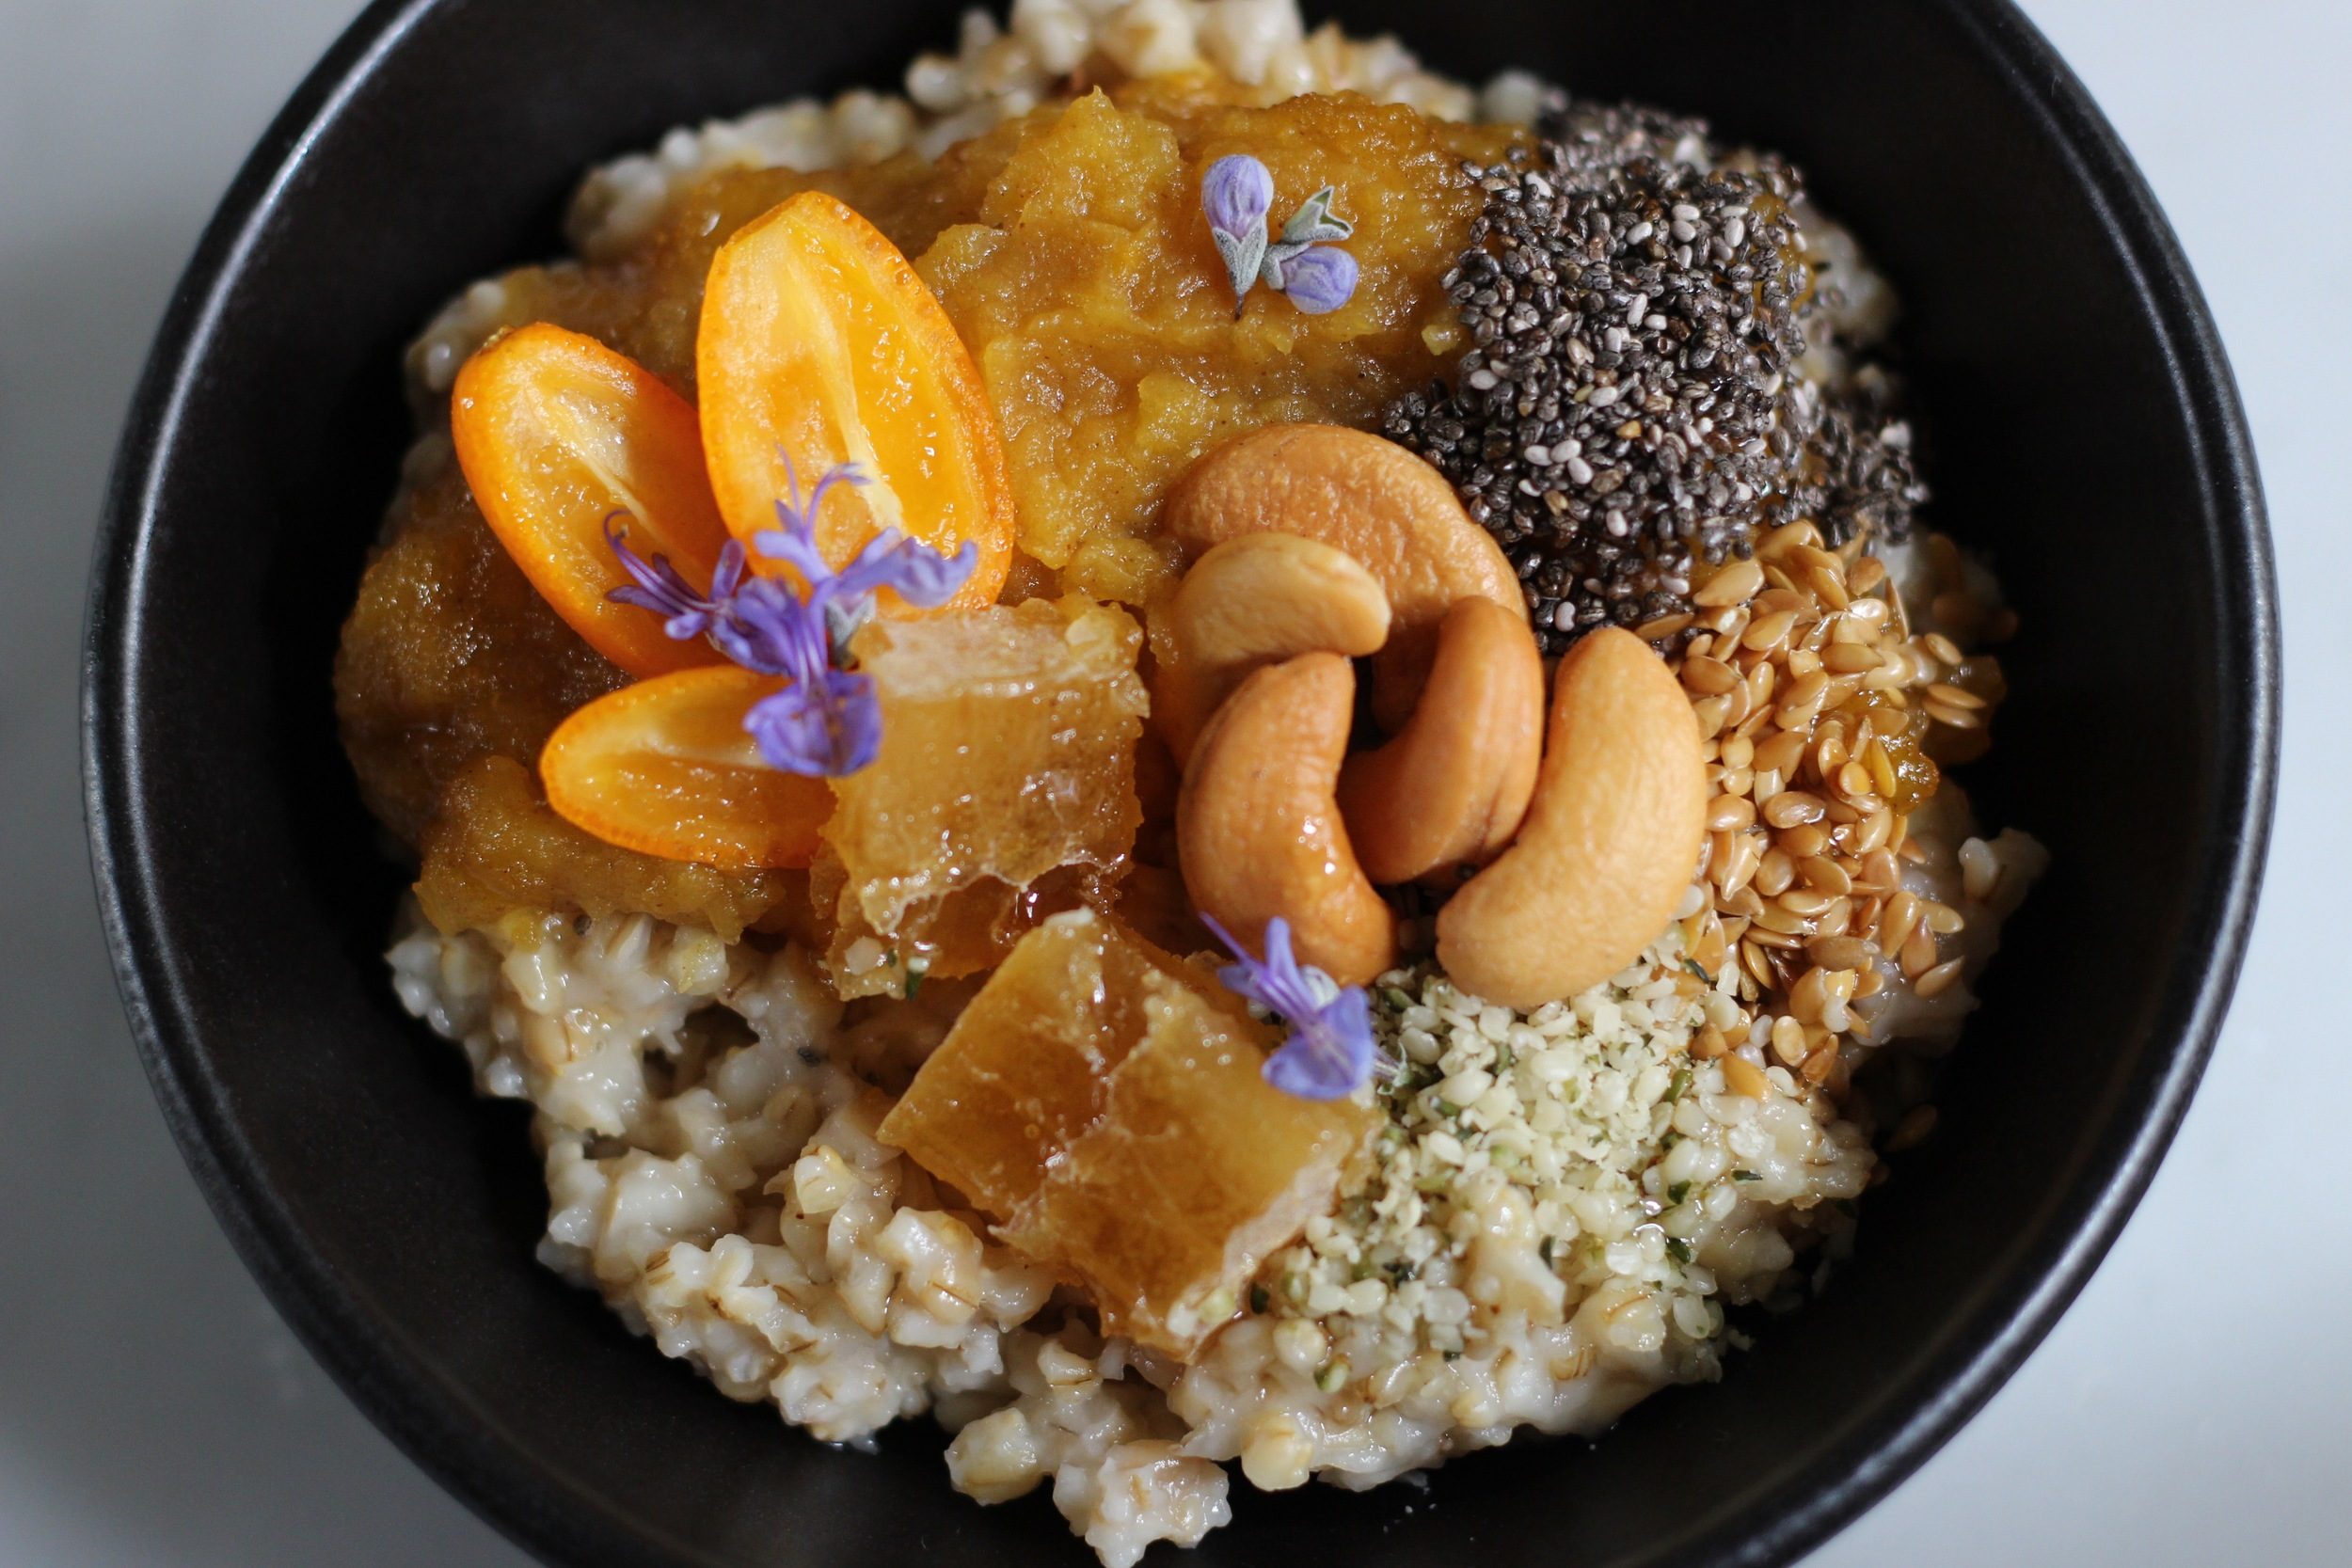 A complex and delicious bowl of oatmeal with pumpkin, cashews, kumquats, chia seeds, and chunks of comb honey. Garnished with edible flowers. Recipe at ThreadandWhisk.com.